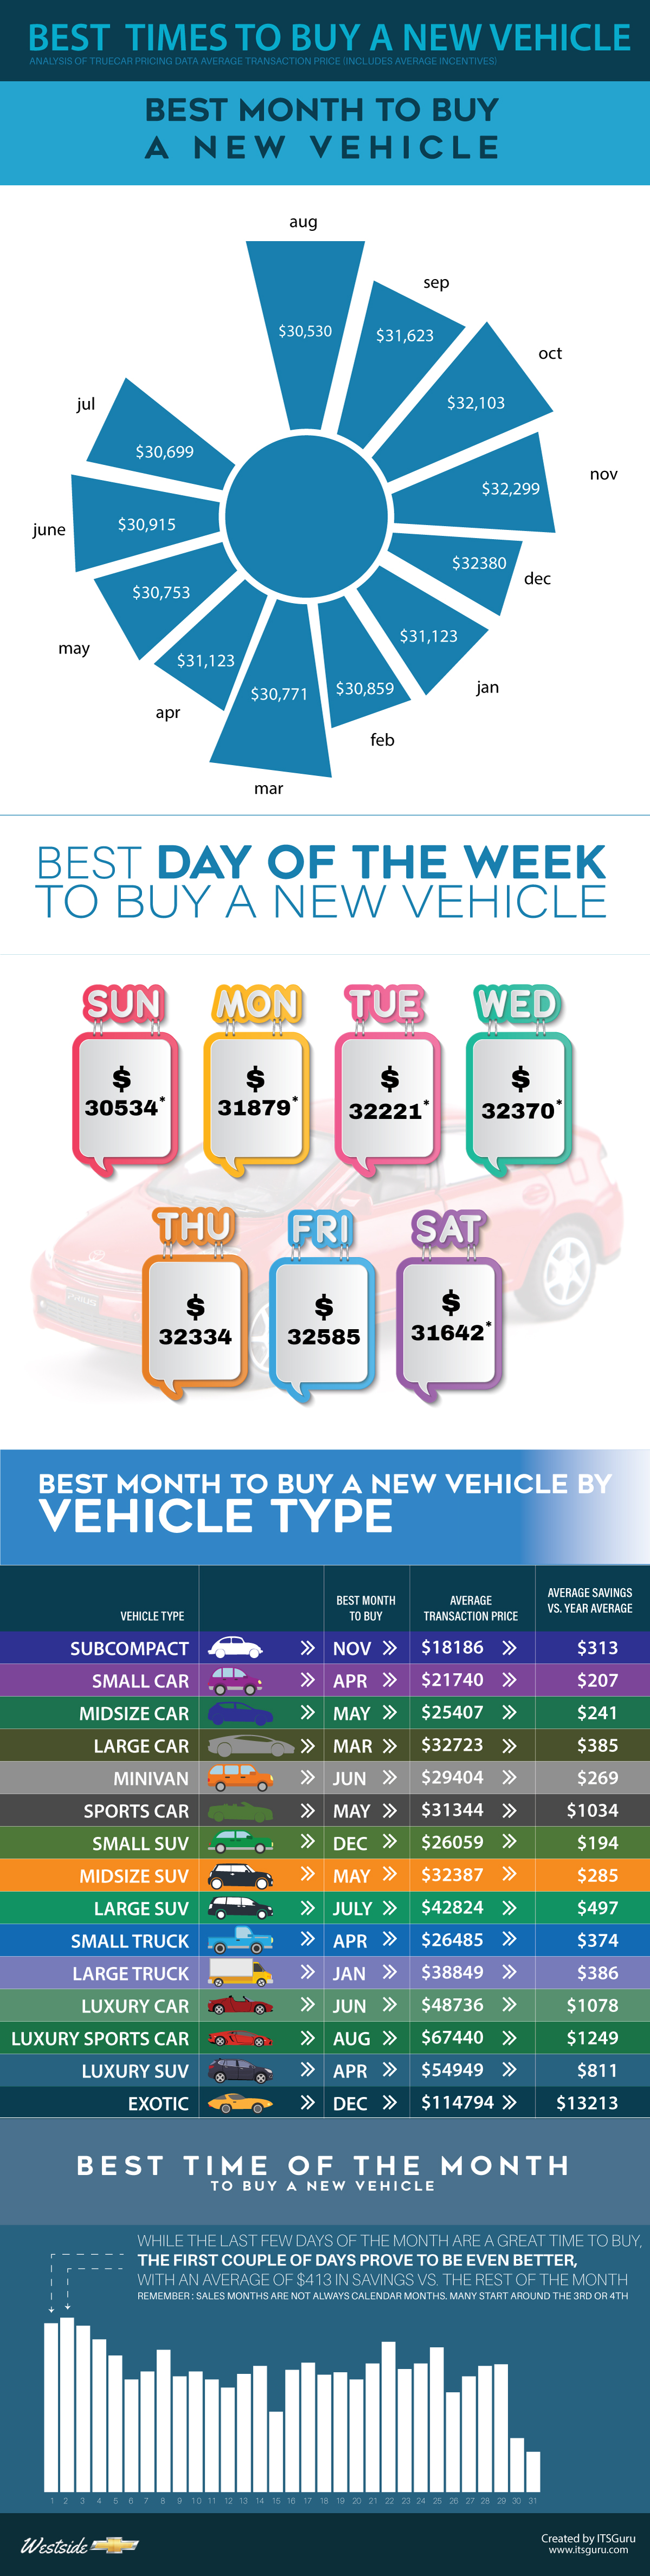 Is Feb A Good Month To Buy A New Car